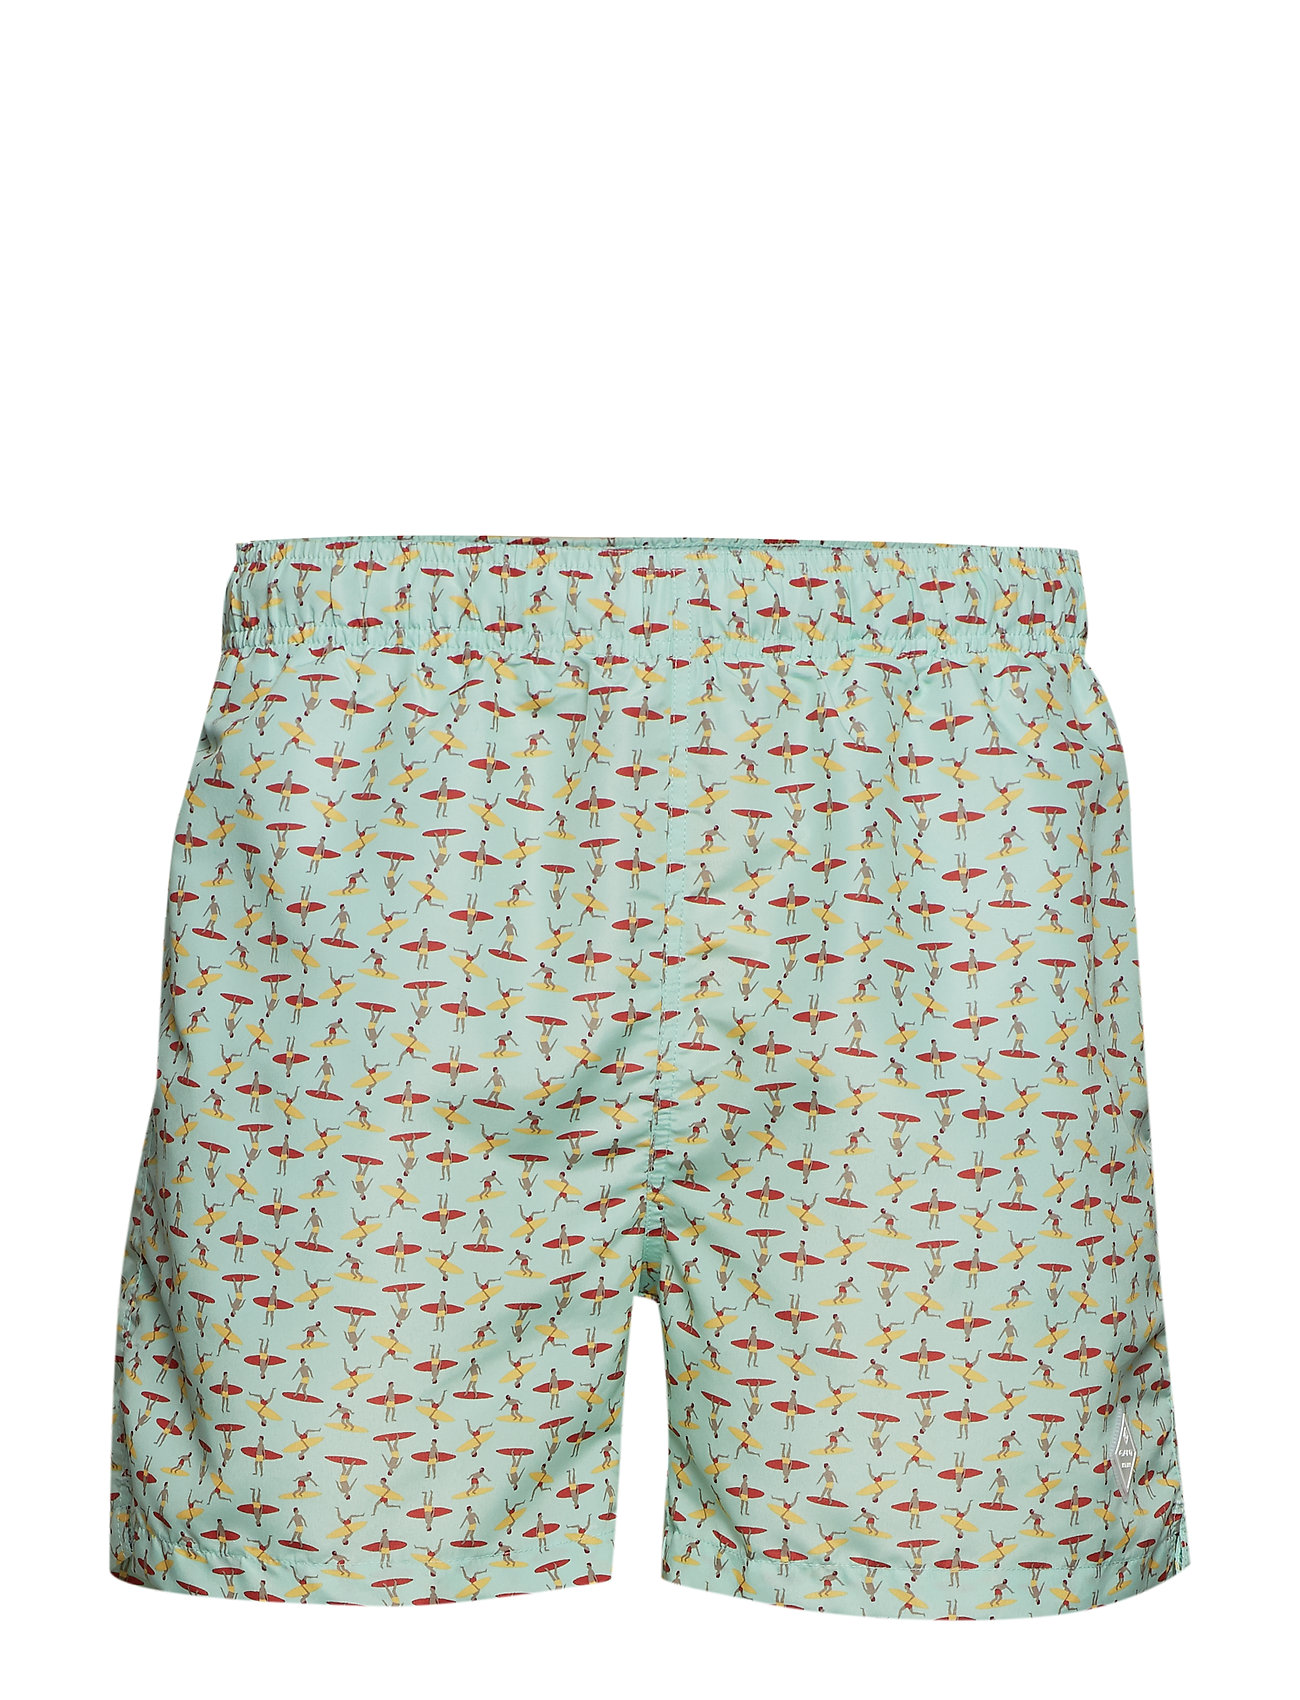 GANT SURFERS SWIM SHORTS CLASSIC FIT - BAY GREEN